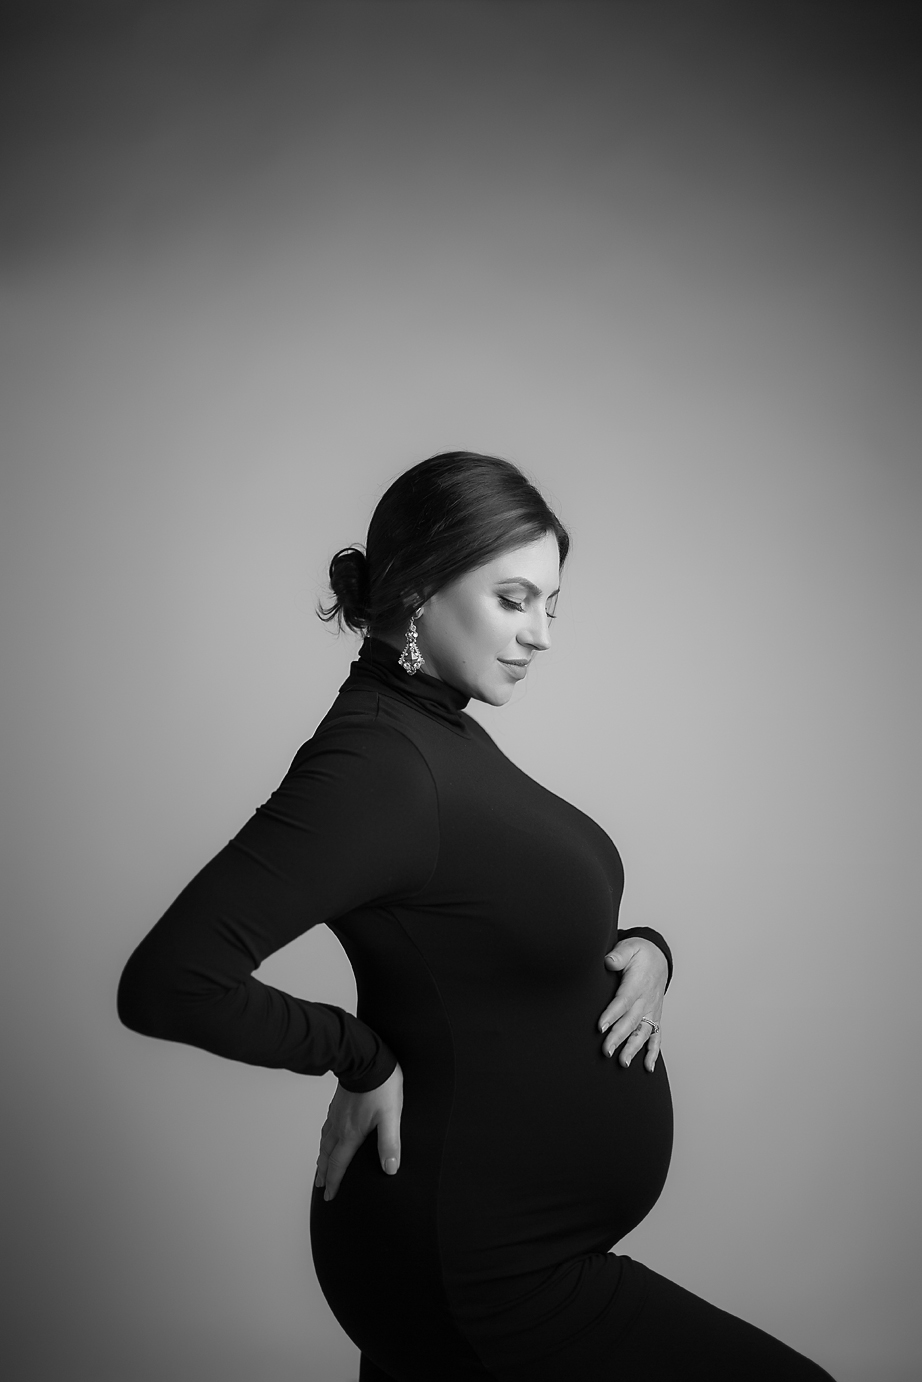 orange-county-maternity-photographer-vogue-classy-chic-high-fashion.jpg